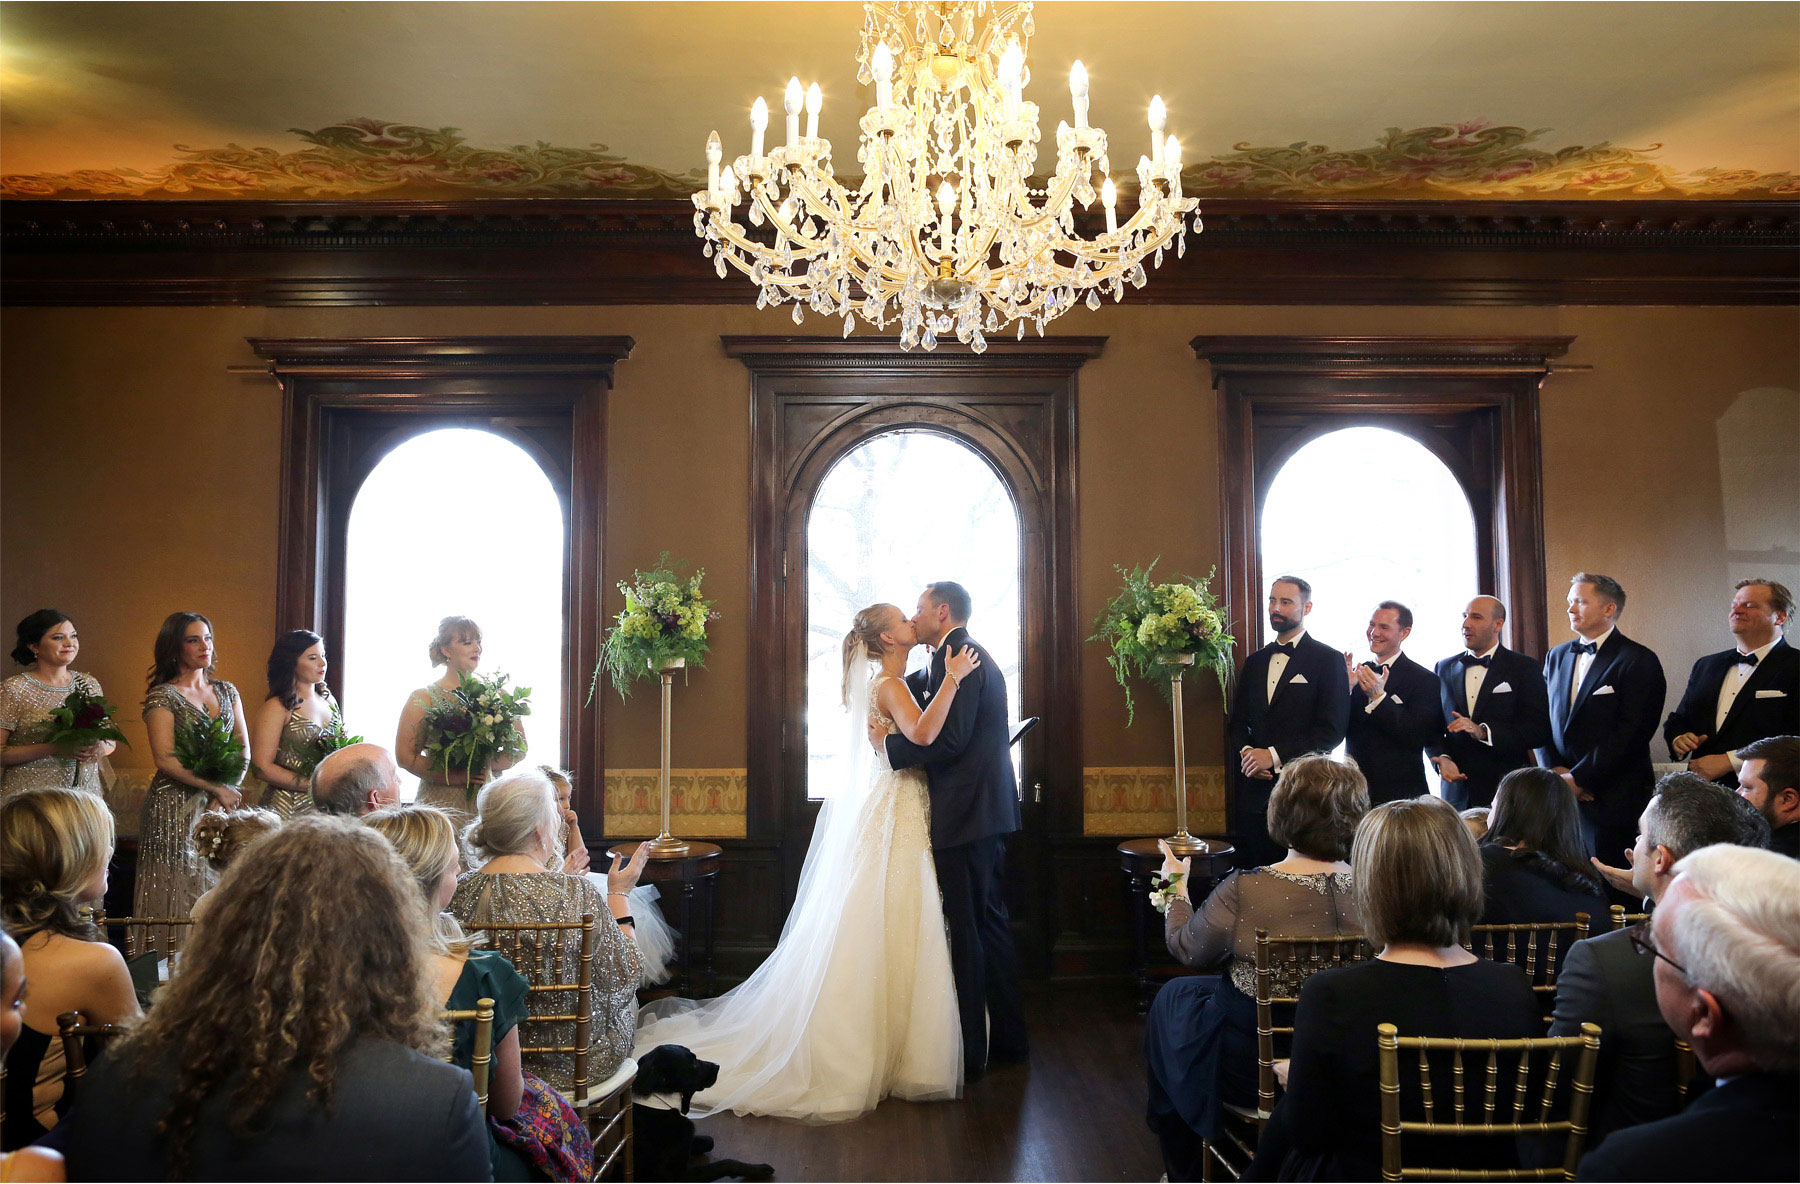 10-Minneapolis-Wedding-Photography-by-Vick-Semple-Mansion-Ceremony-Abby-and-Jason.jpg